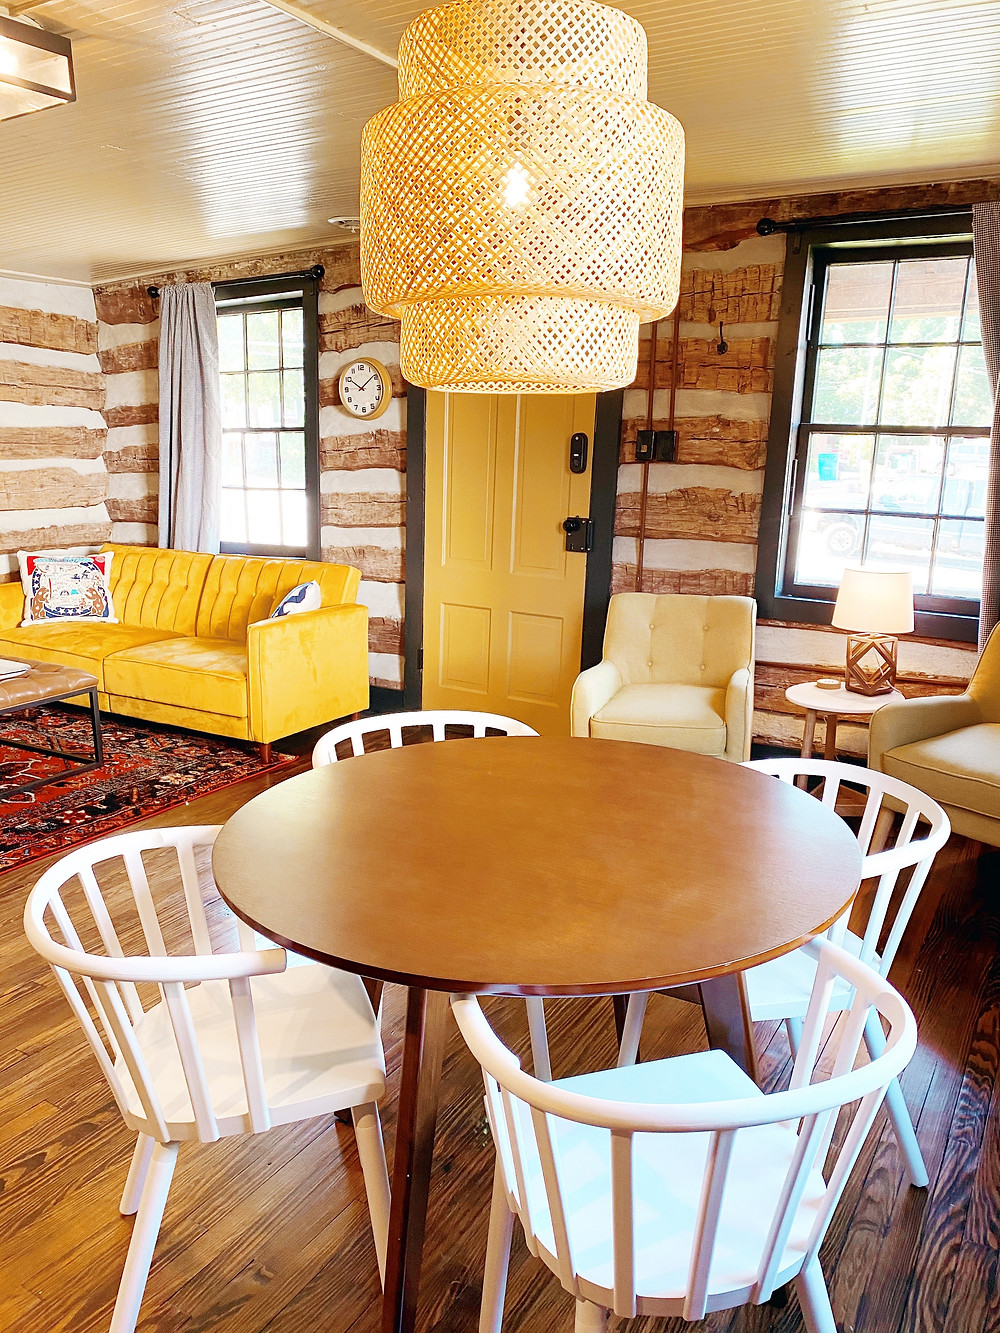 redfin real estate blog m. reed studio meghan reed press interior design expert top tips for a small space st. louis mo  st. charles missouri camp mill pond vacation rental cabin